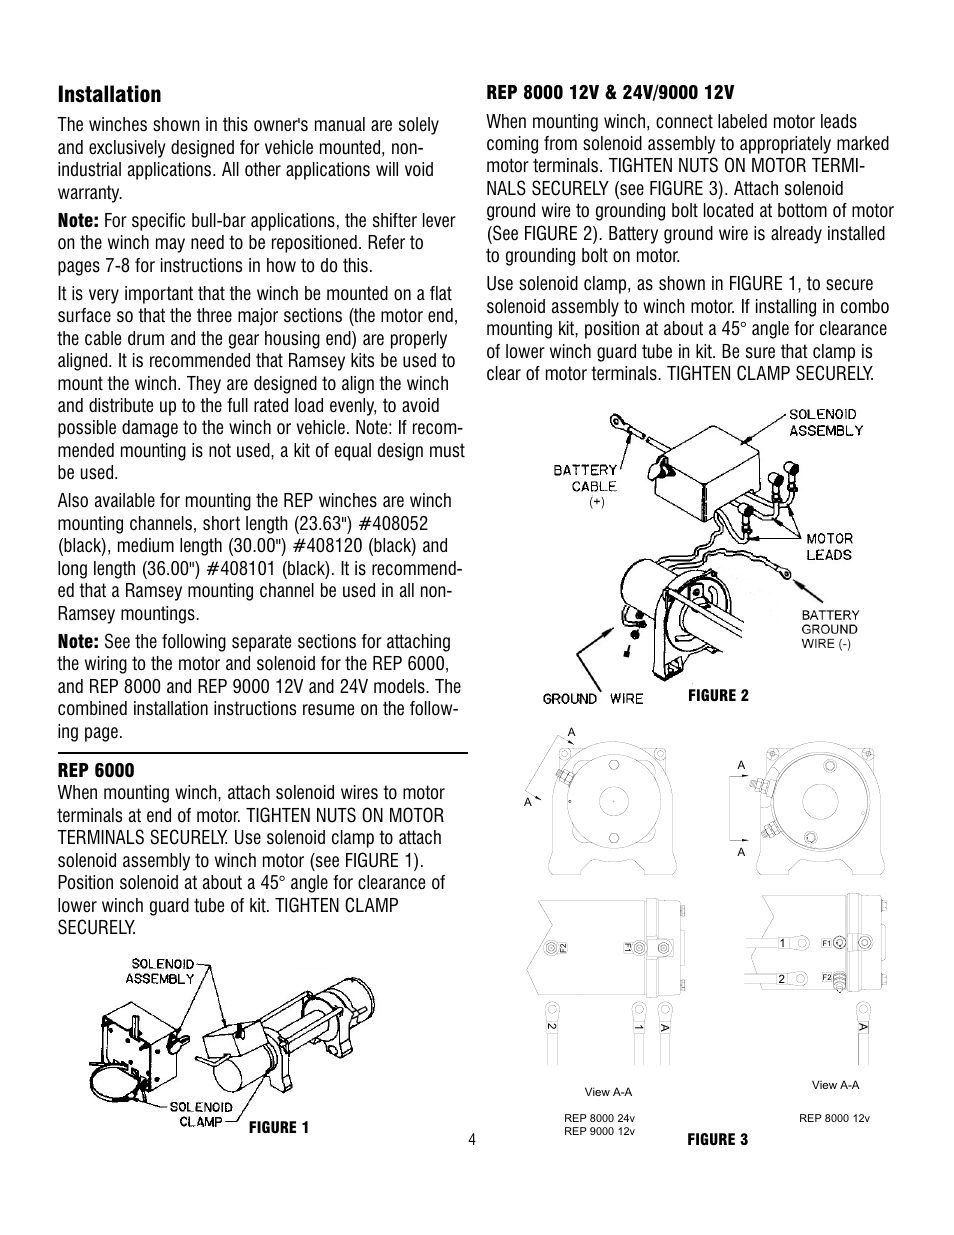 ramsey winch rep 6000_8000_9000 current page4 ramsey rep8000 winch solenoid wiring diagram pirate4x4 ramsey re 12000 winch wiring diagram at virtualis.co